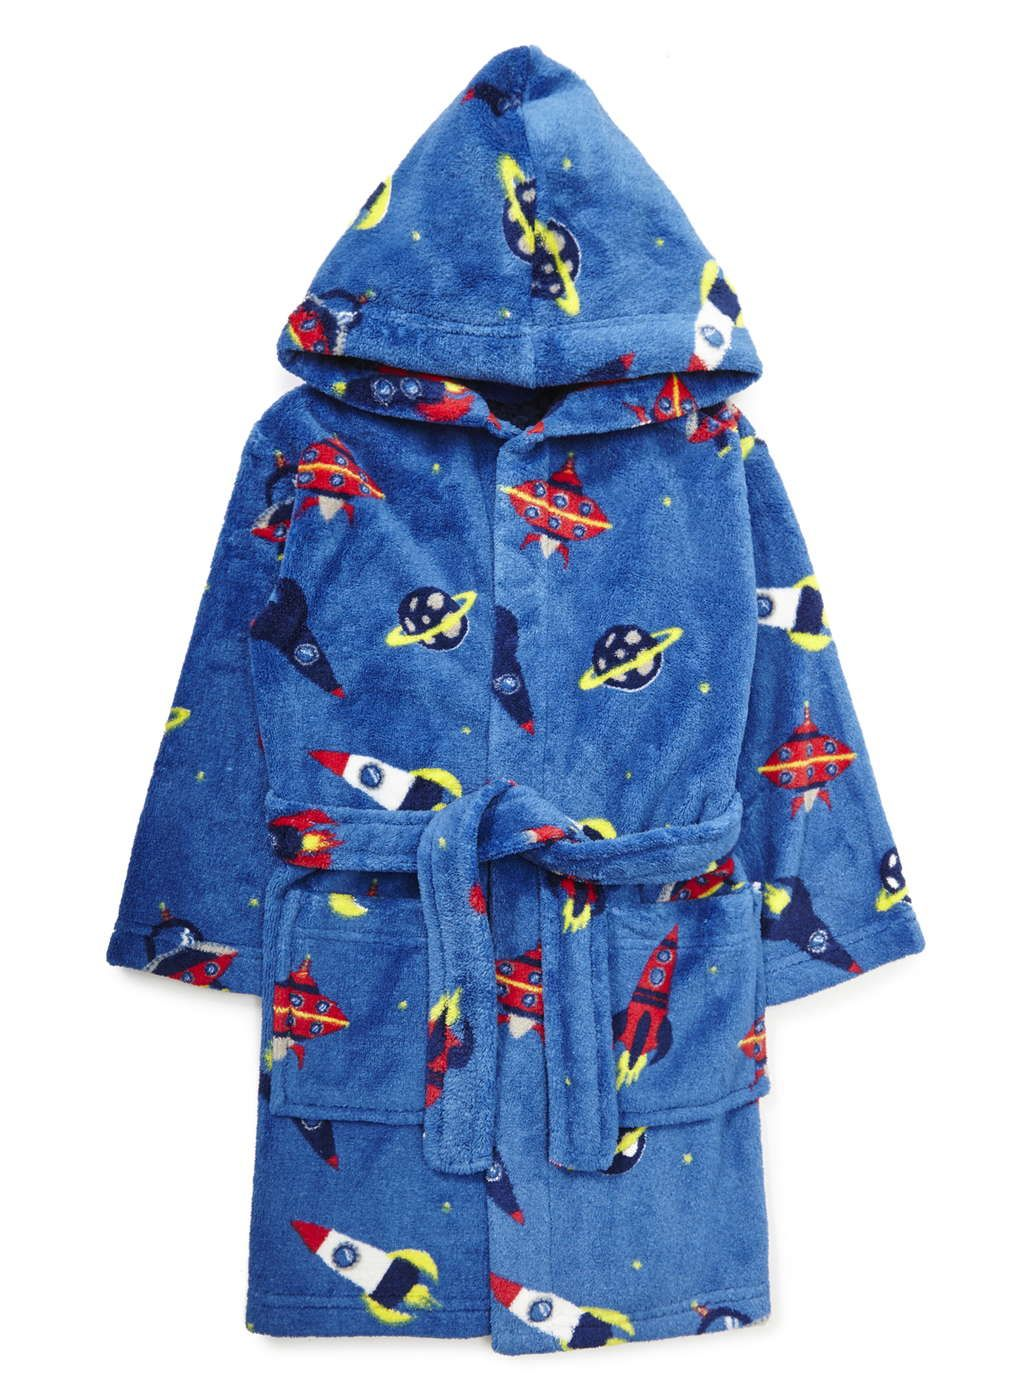 Boys Blue Space Rocket Dressing Gown | dino gummies | Pinterest ...